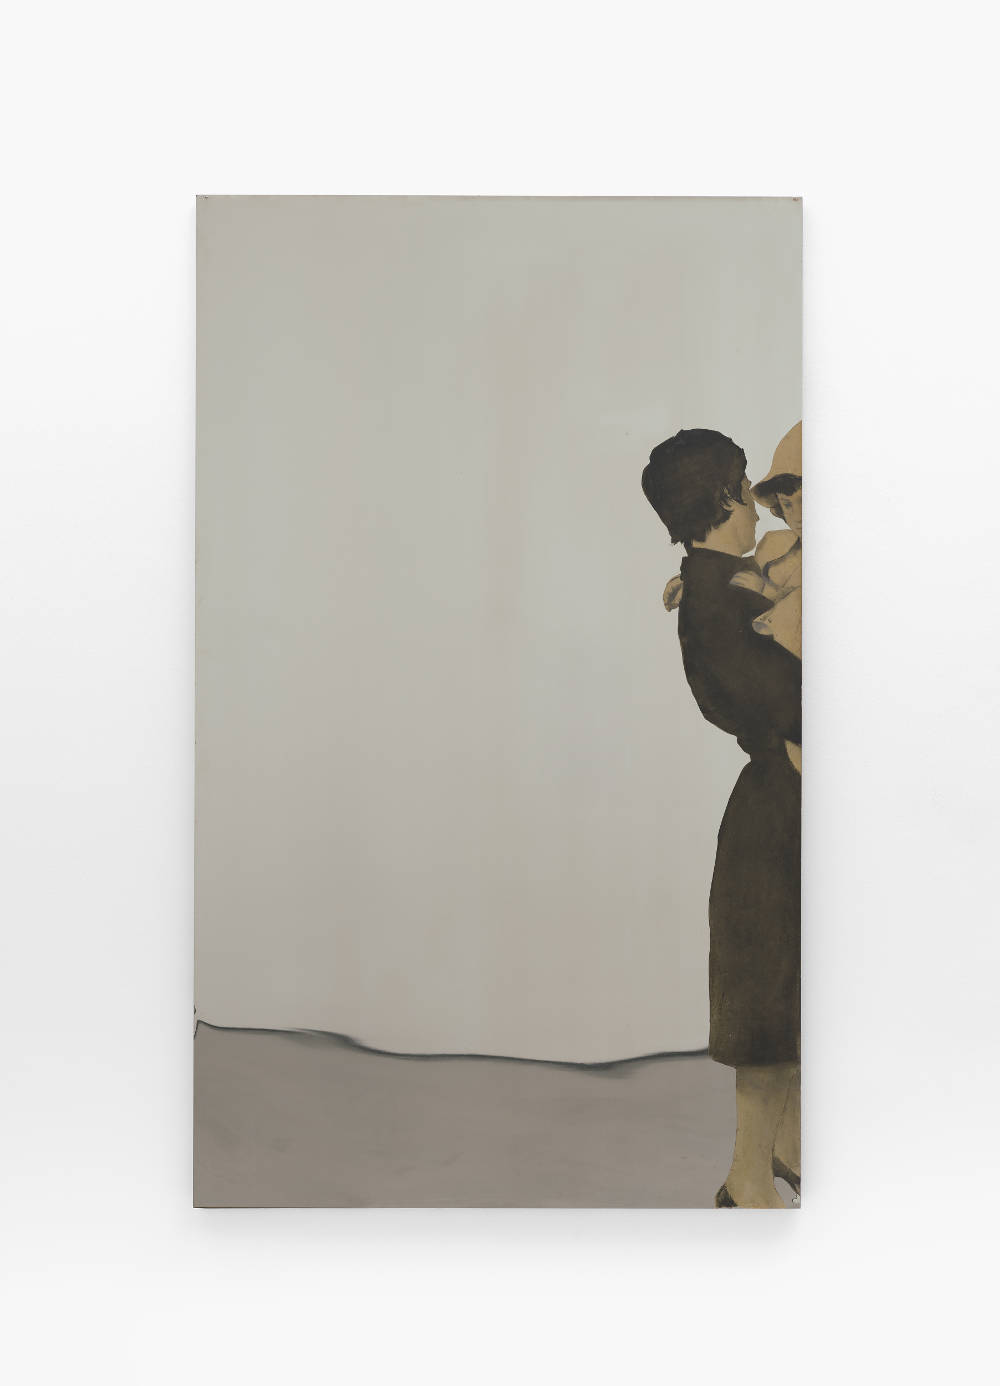 Michelangelo Pistoletto, Marzia con la bambina, 1964, Painted tissue paper on stainless steel, 78 13/16 x 47 1/4 inches (200.2 x 120 cm). © Michelangelo Pistoletto; Courtesy of the artist, Luhring Augustine, New York, Galleria Christian Stein, Milan, and Simon Lee Gallery, London / Hong Kong